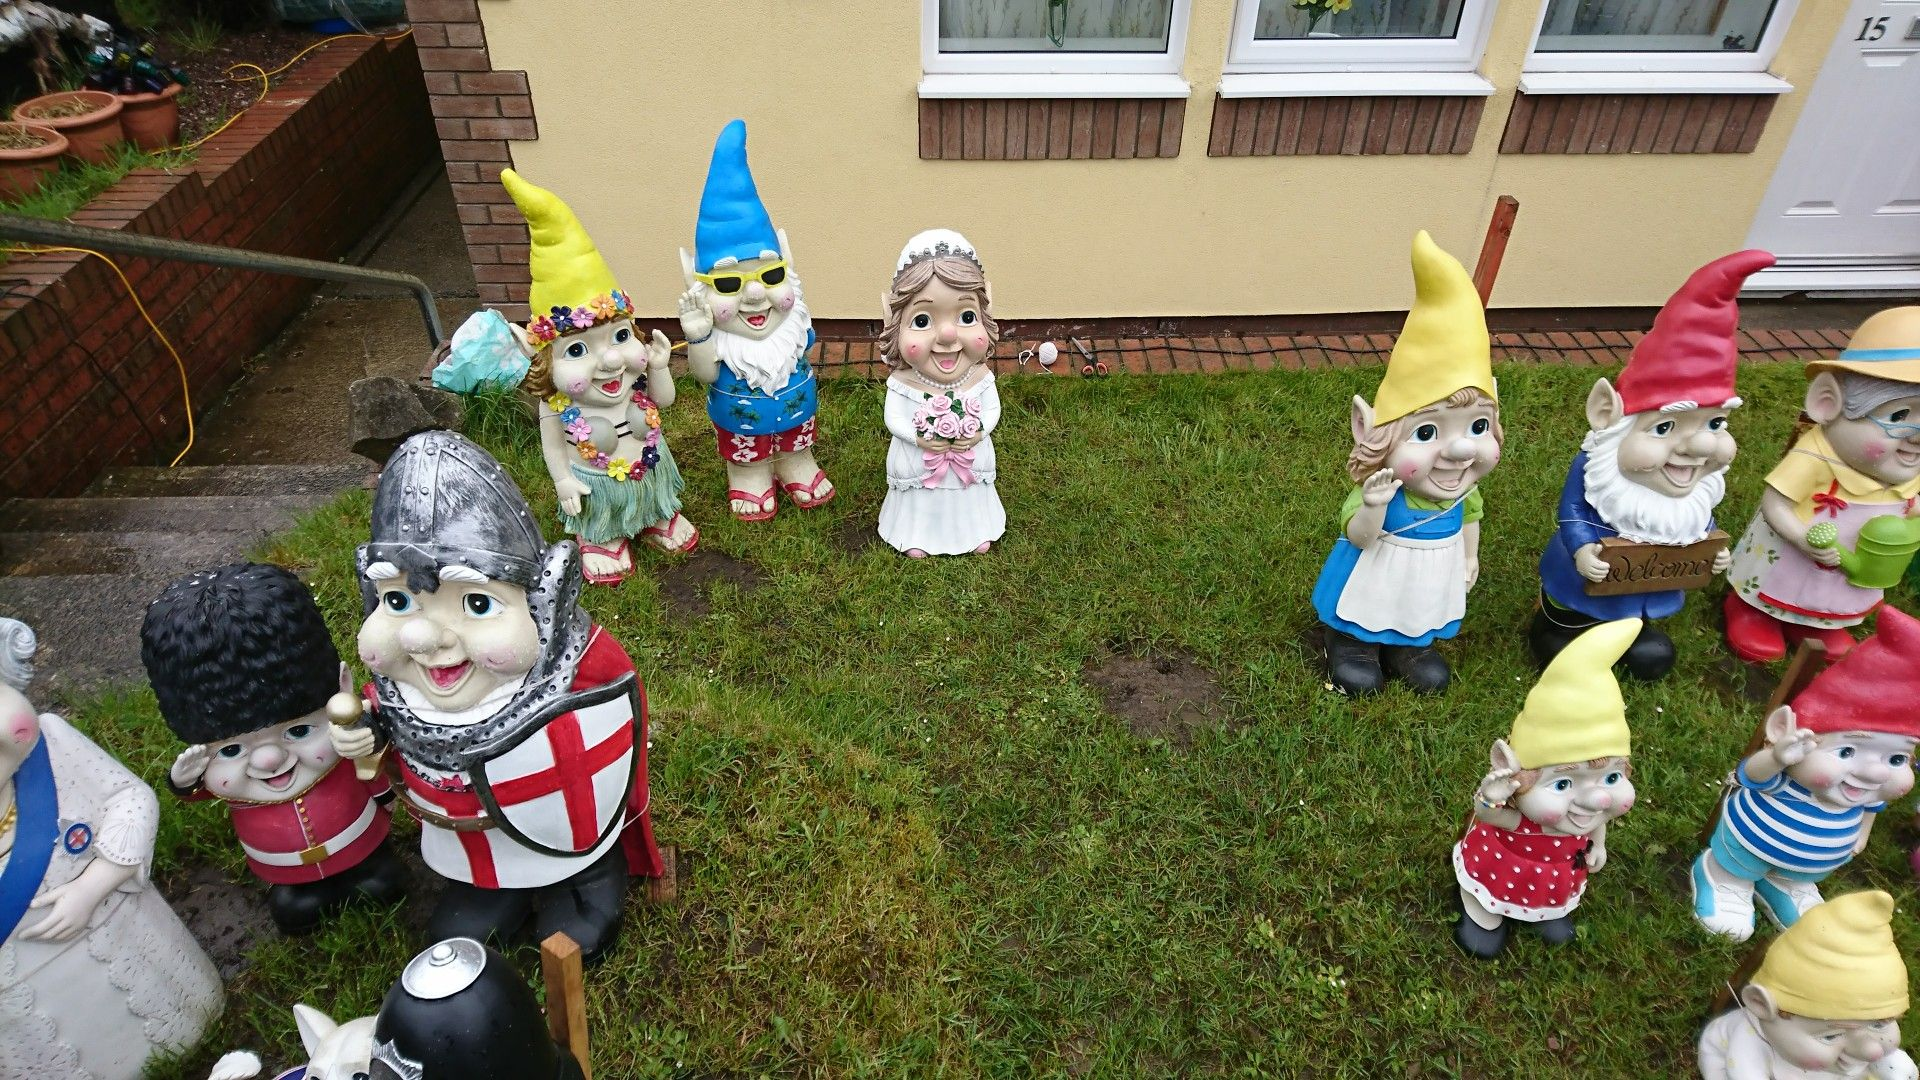 Pin by Julie Chandler on Just wow Asda gnomes, Gnomes, Fire